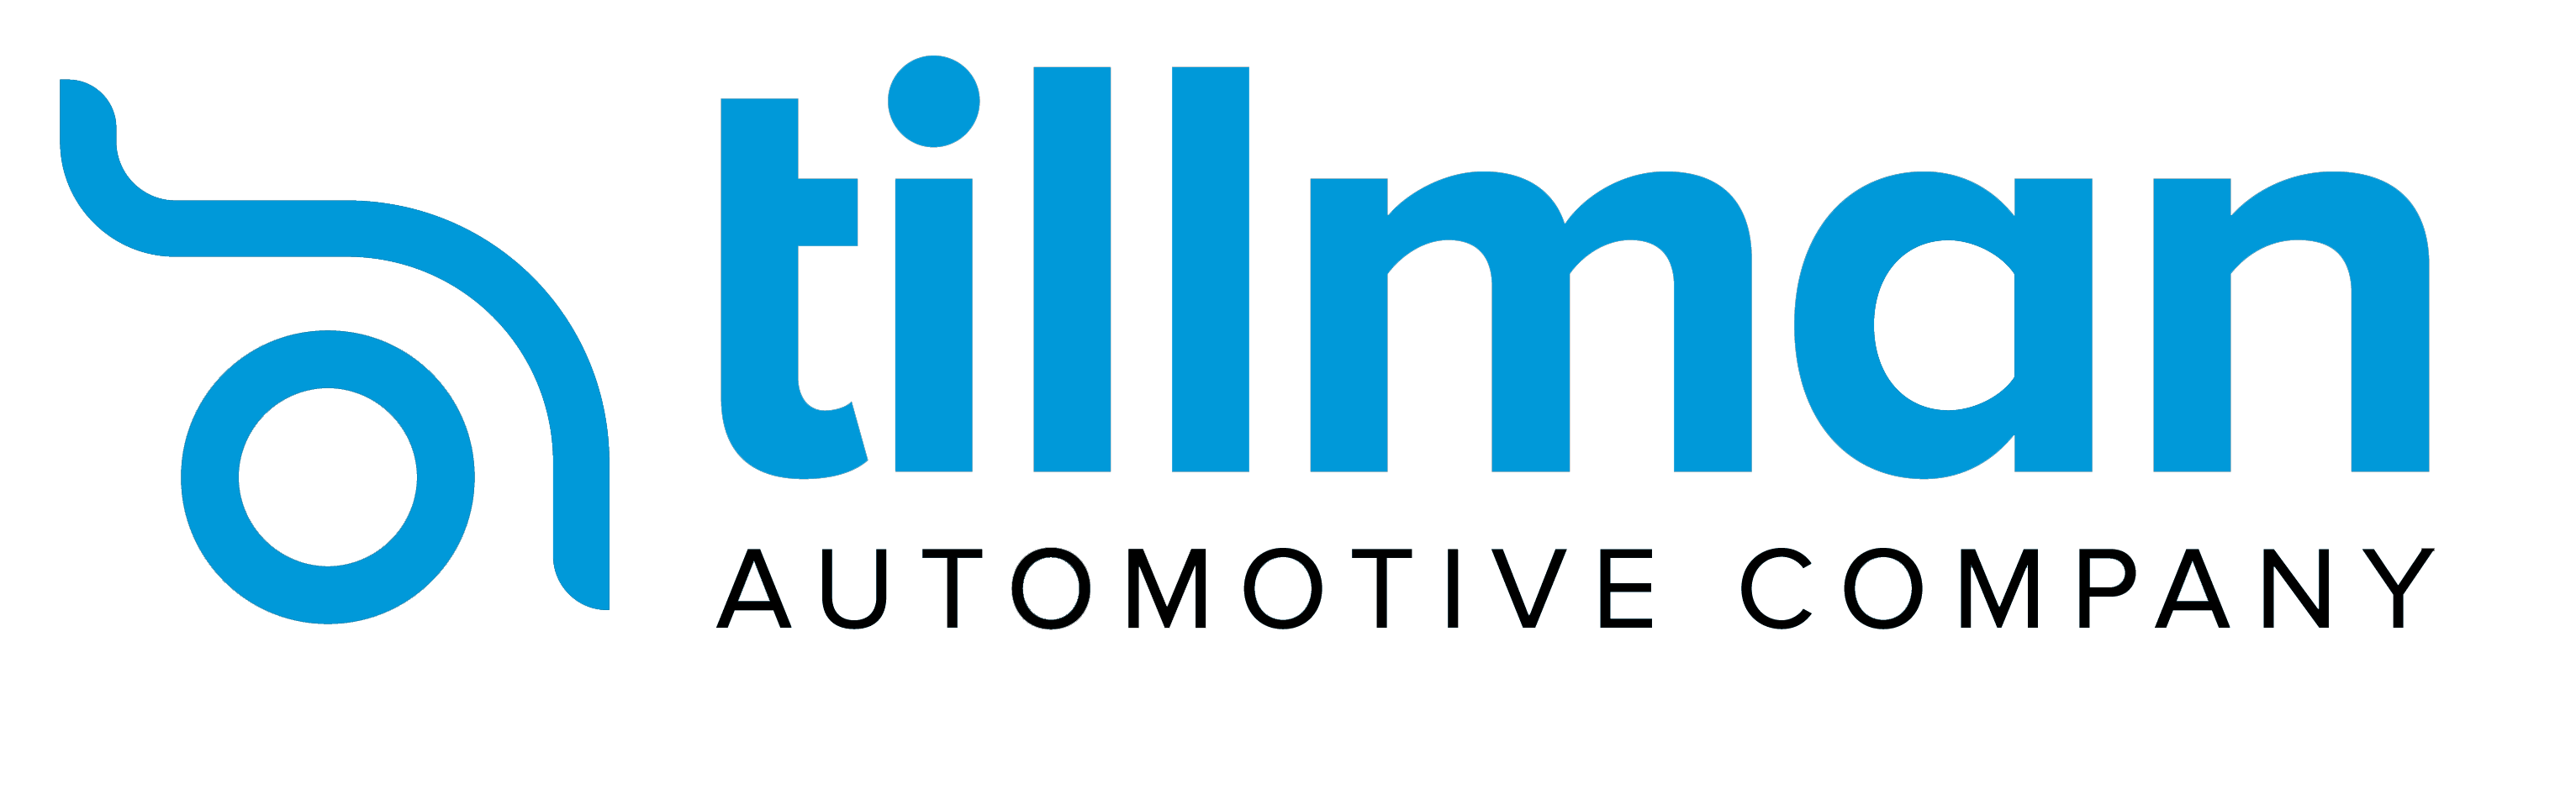 Tillman Automotive Company logo